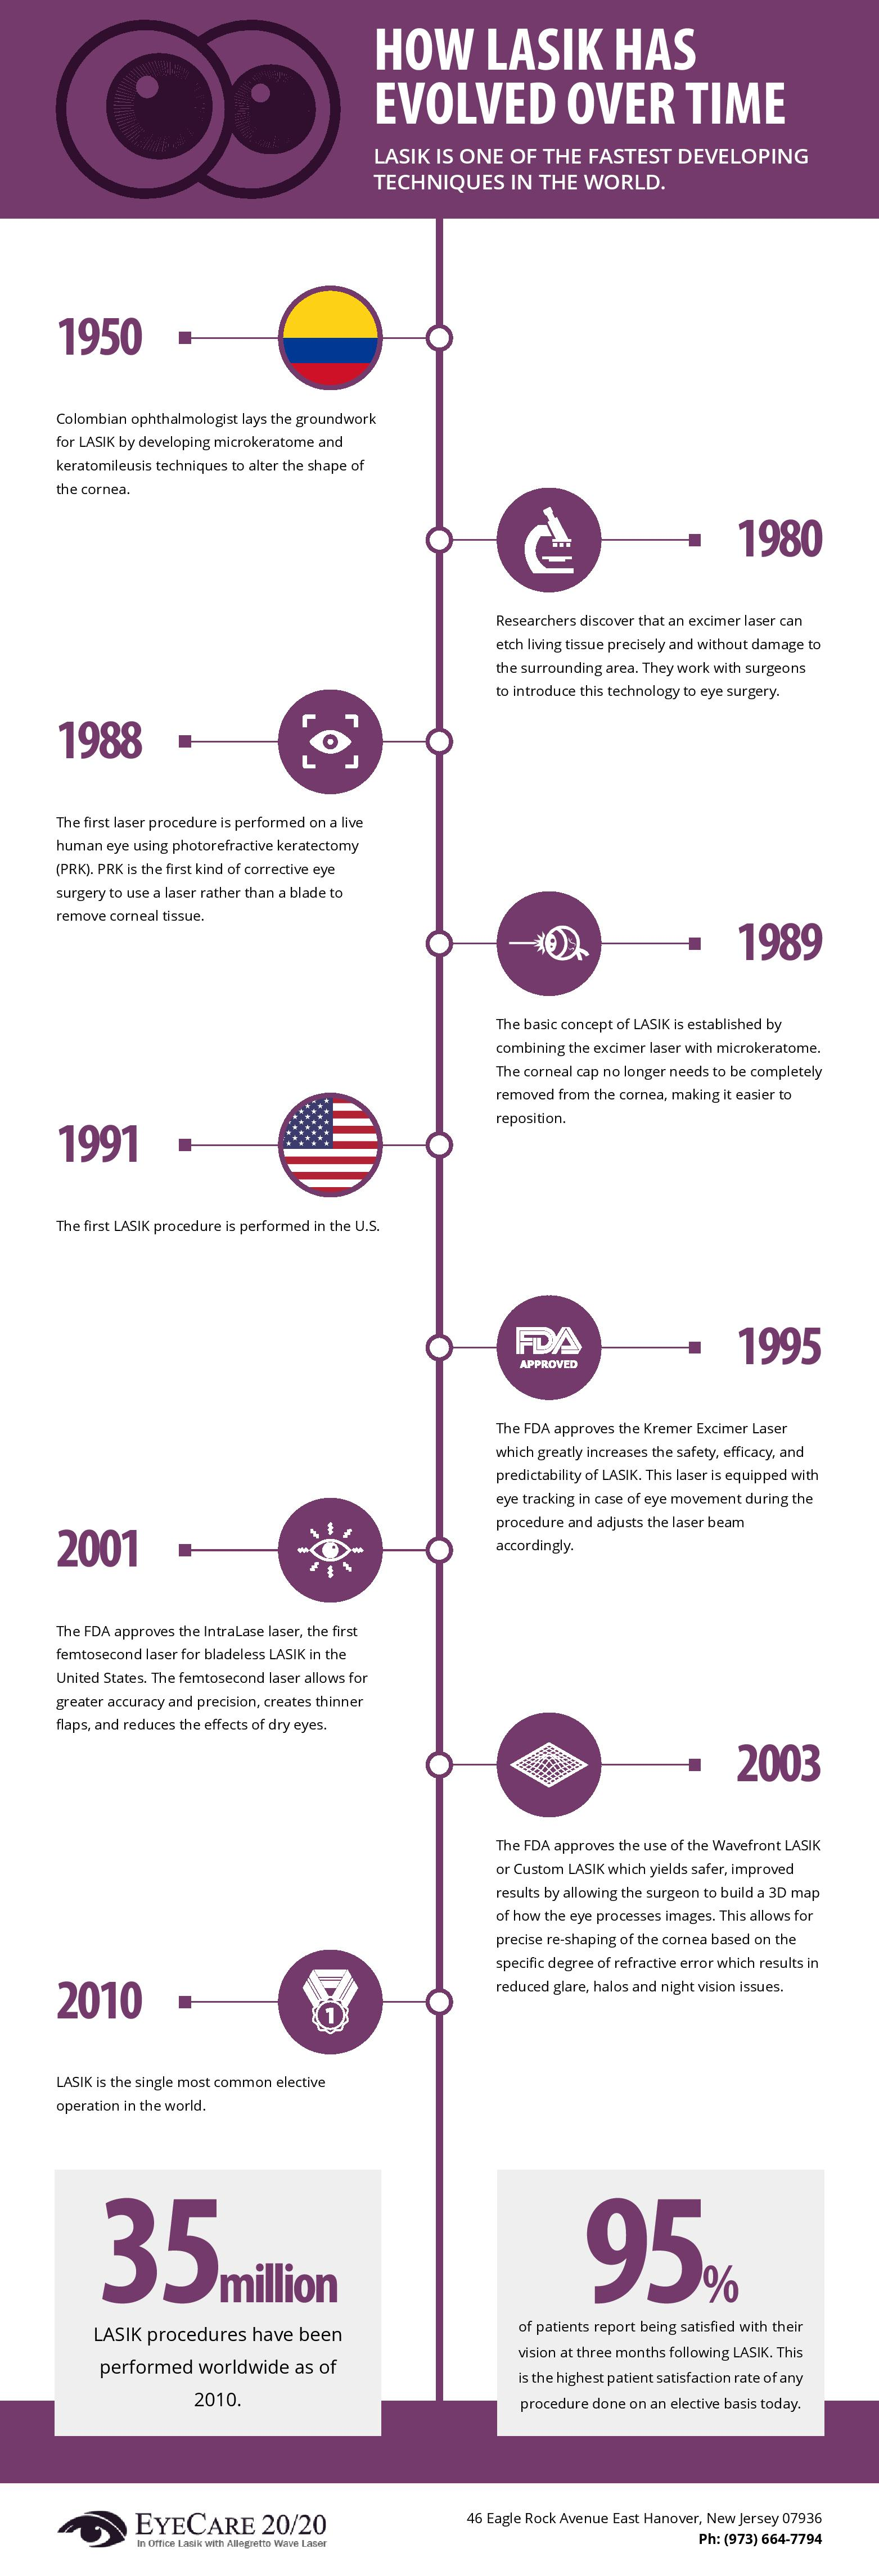 lasik-evolution-history-infographic-plaza